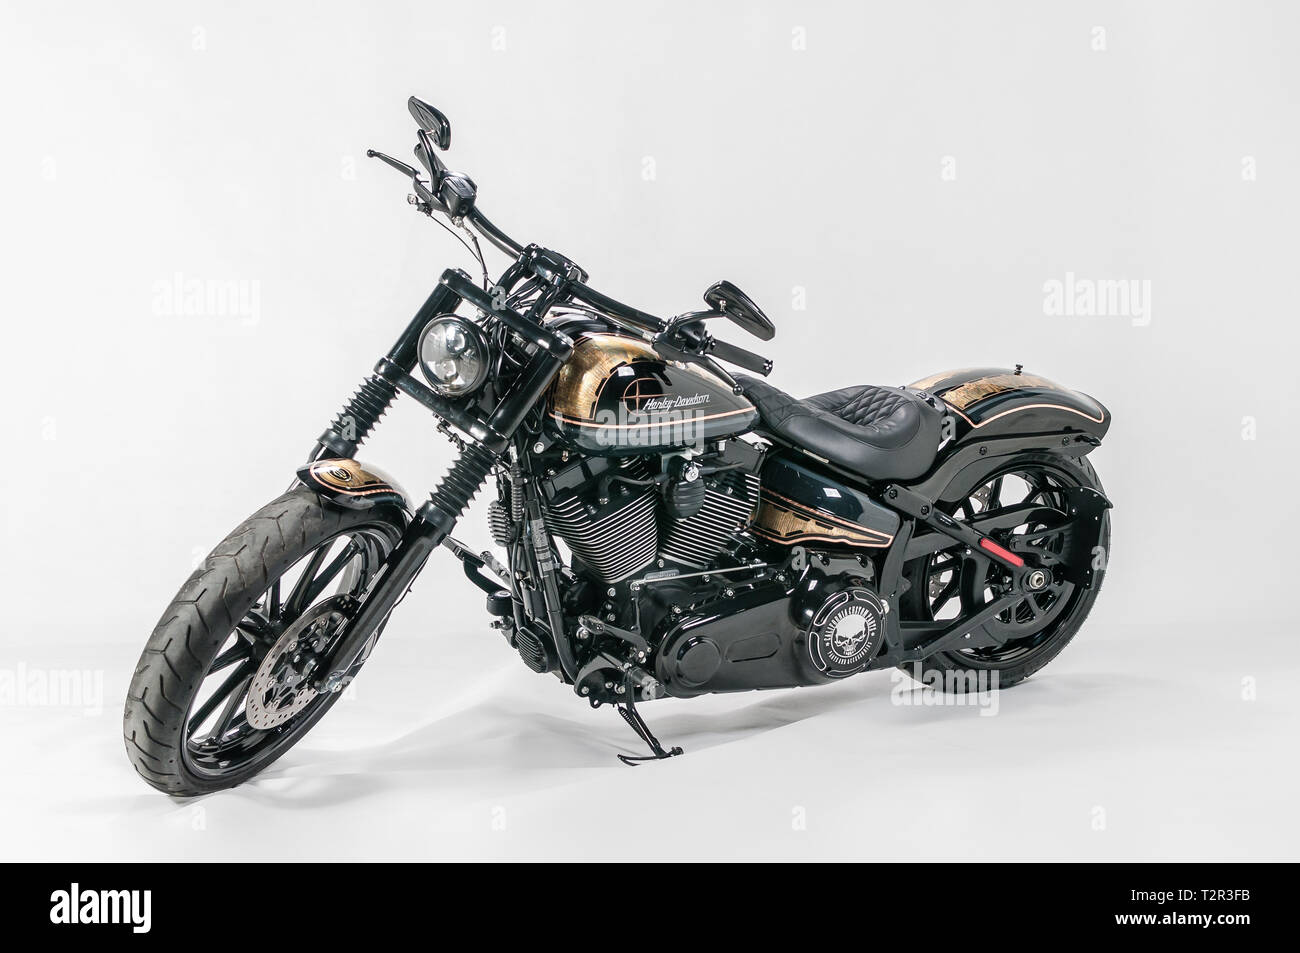 Warsaw, Poland, March 01, 2019: Polish Custom Show.  Presentation of custom designed motorcycles in category Modified Harley - Stock Image